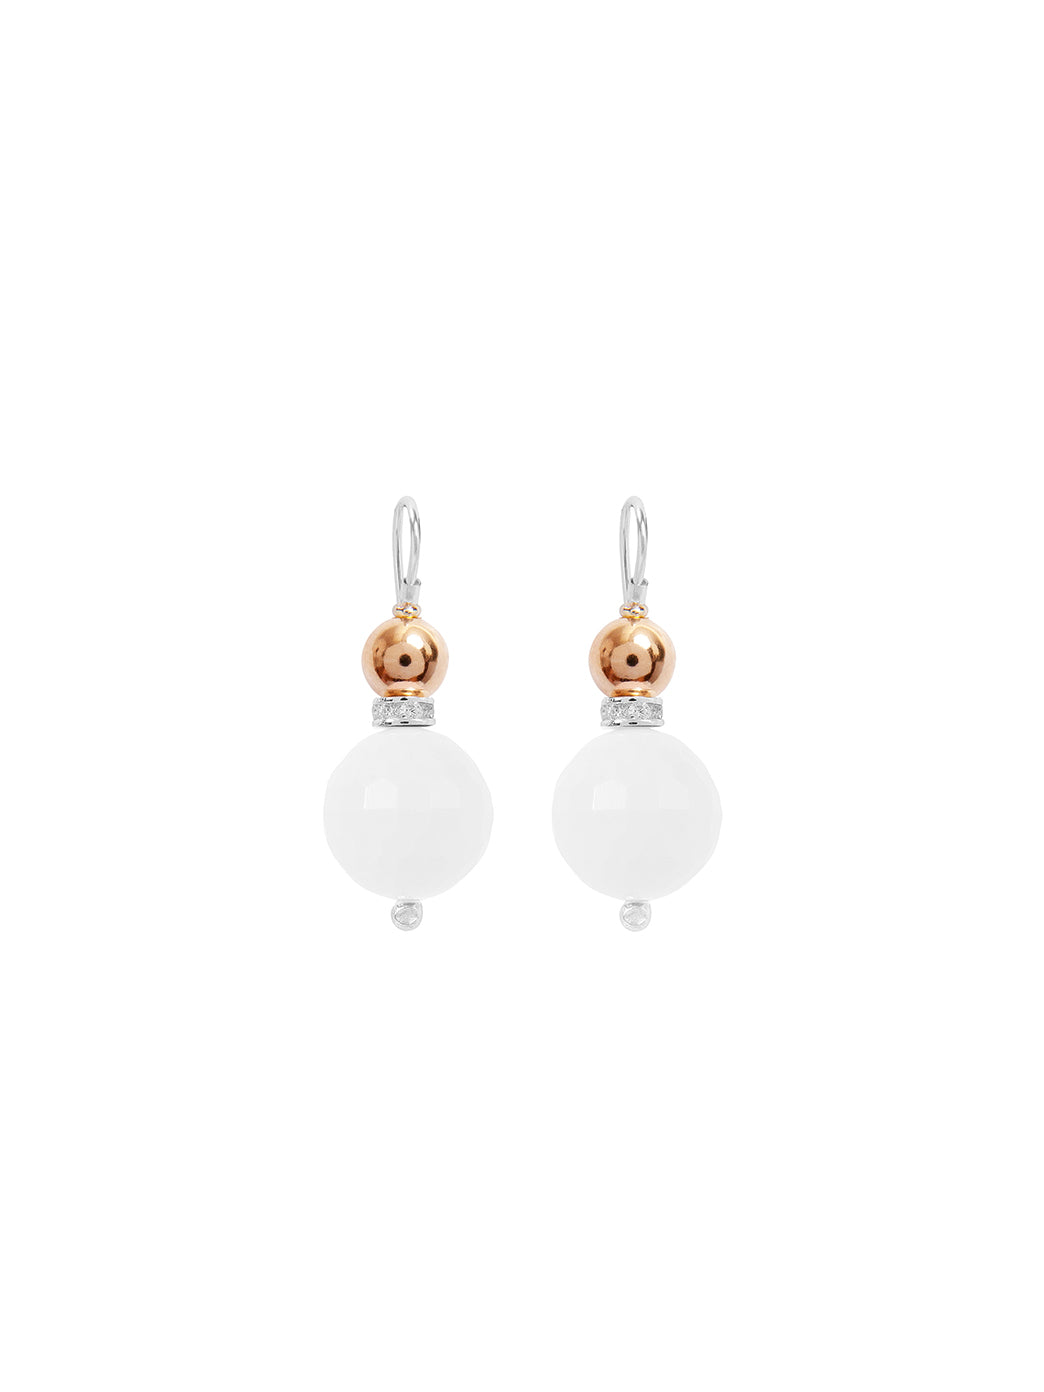 Fiorina Jewellery Double Ball Earrings White Howlite